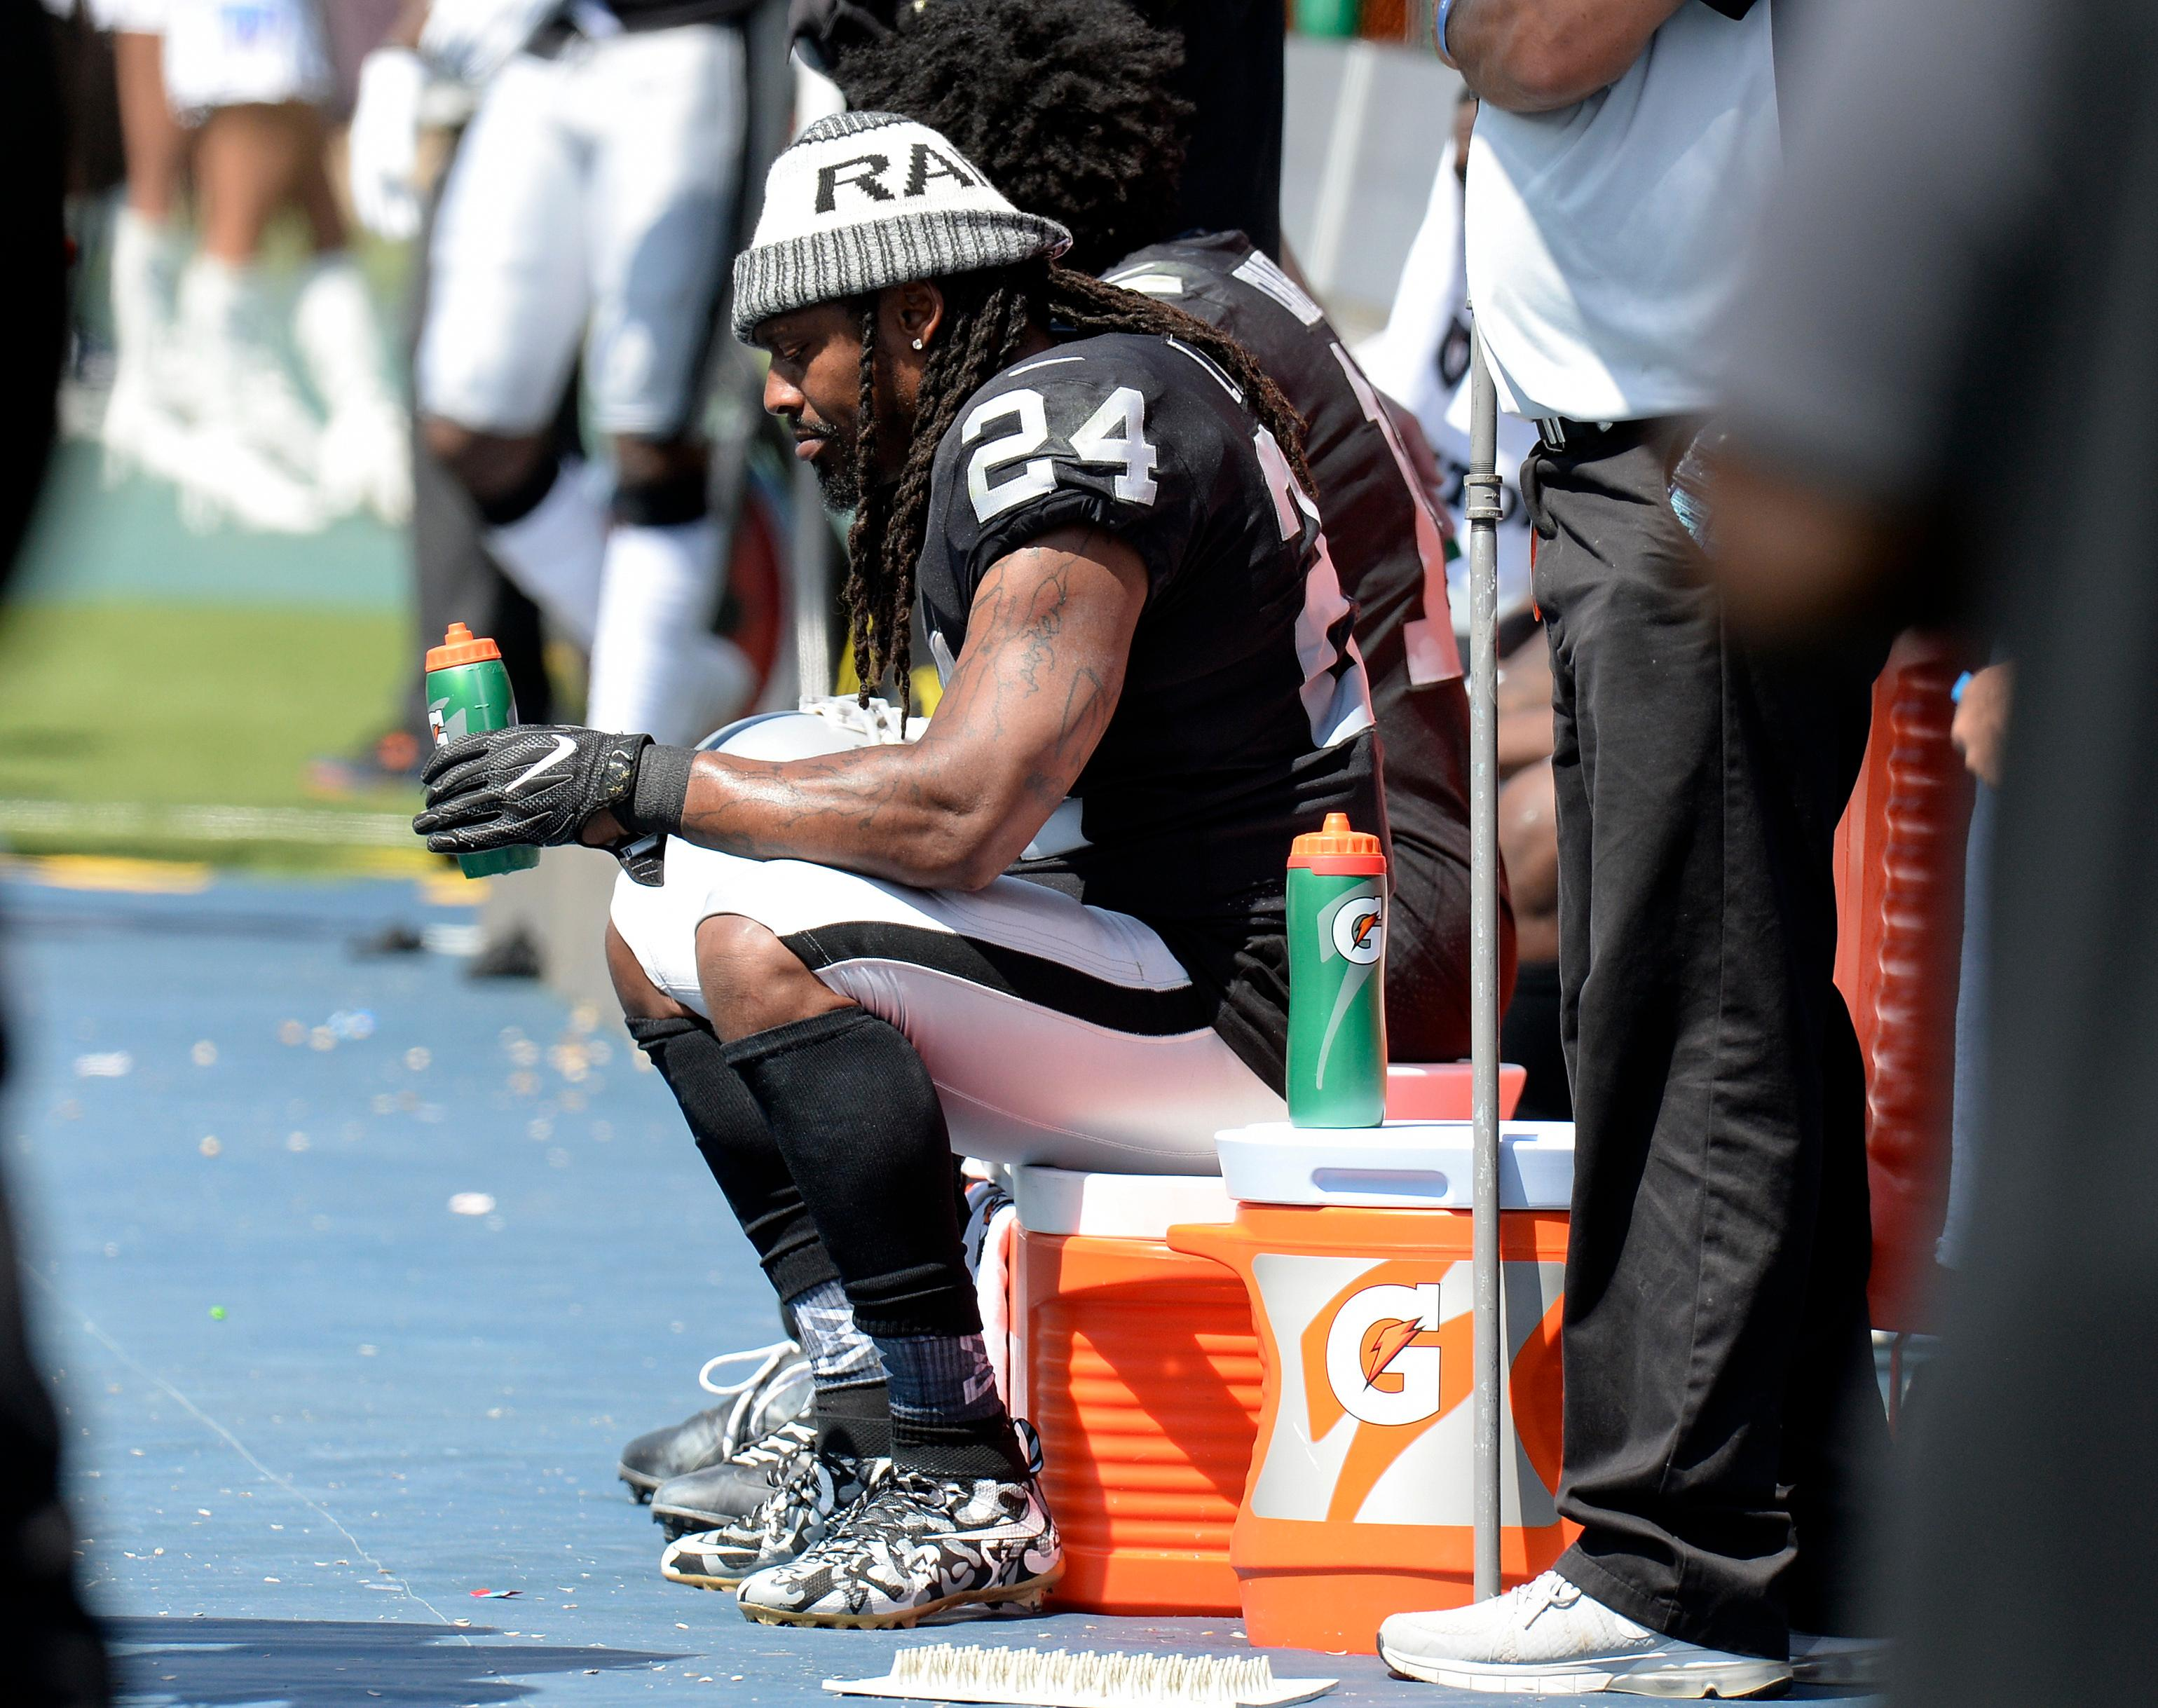 Oakland Raiders running back Marshawn Lynch (24) takes a break on the sideline in the second half of an NFL football game against the Tennessee Titans Sunday, Sept. 10, 2017, in Nashville, Tenn. (AP Photo/Mark Zaleski)